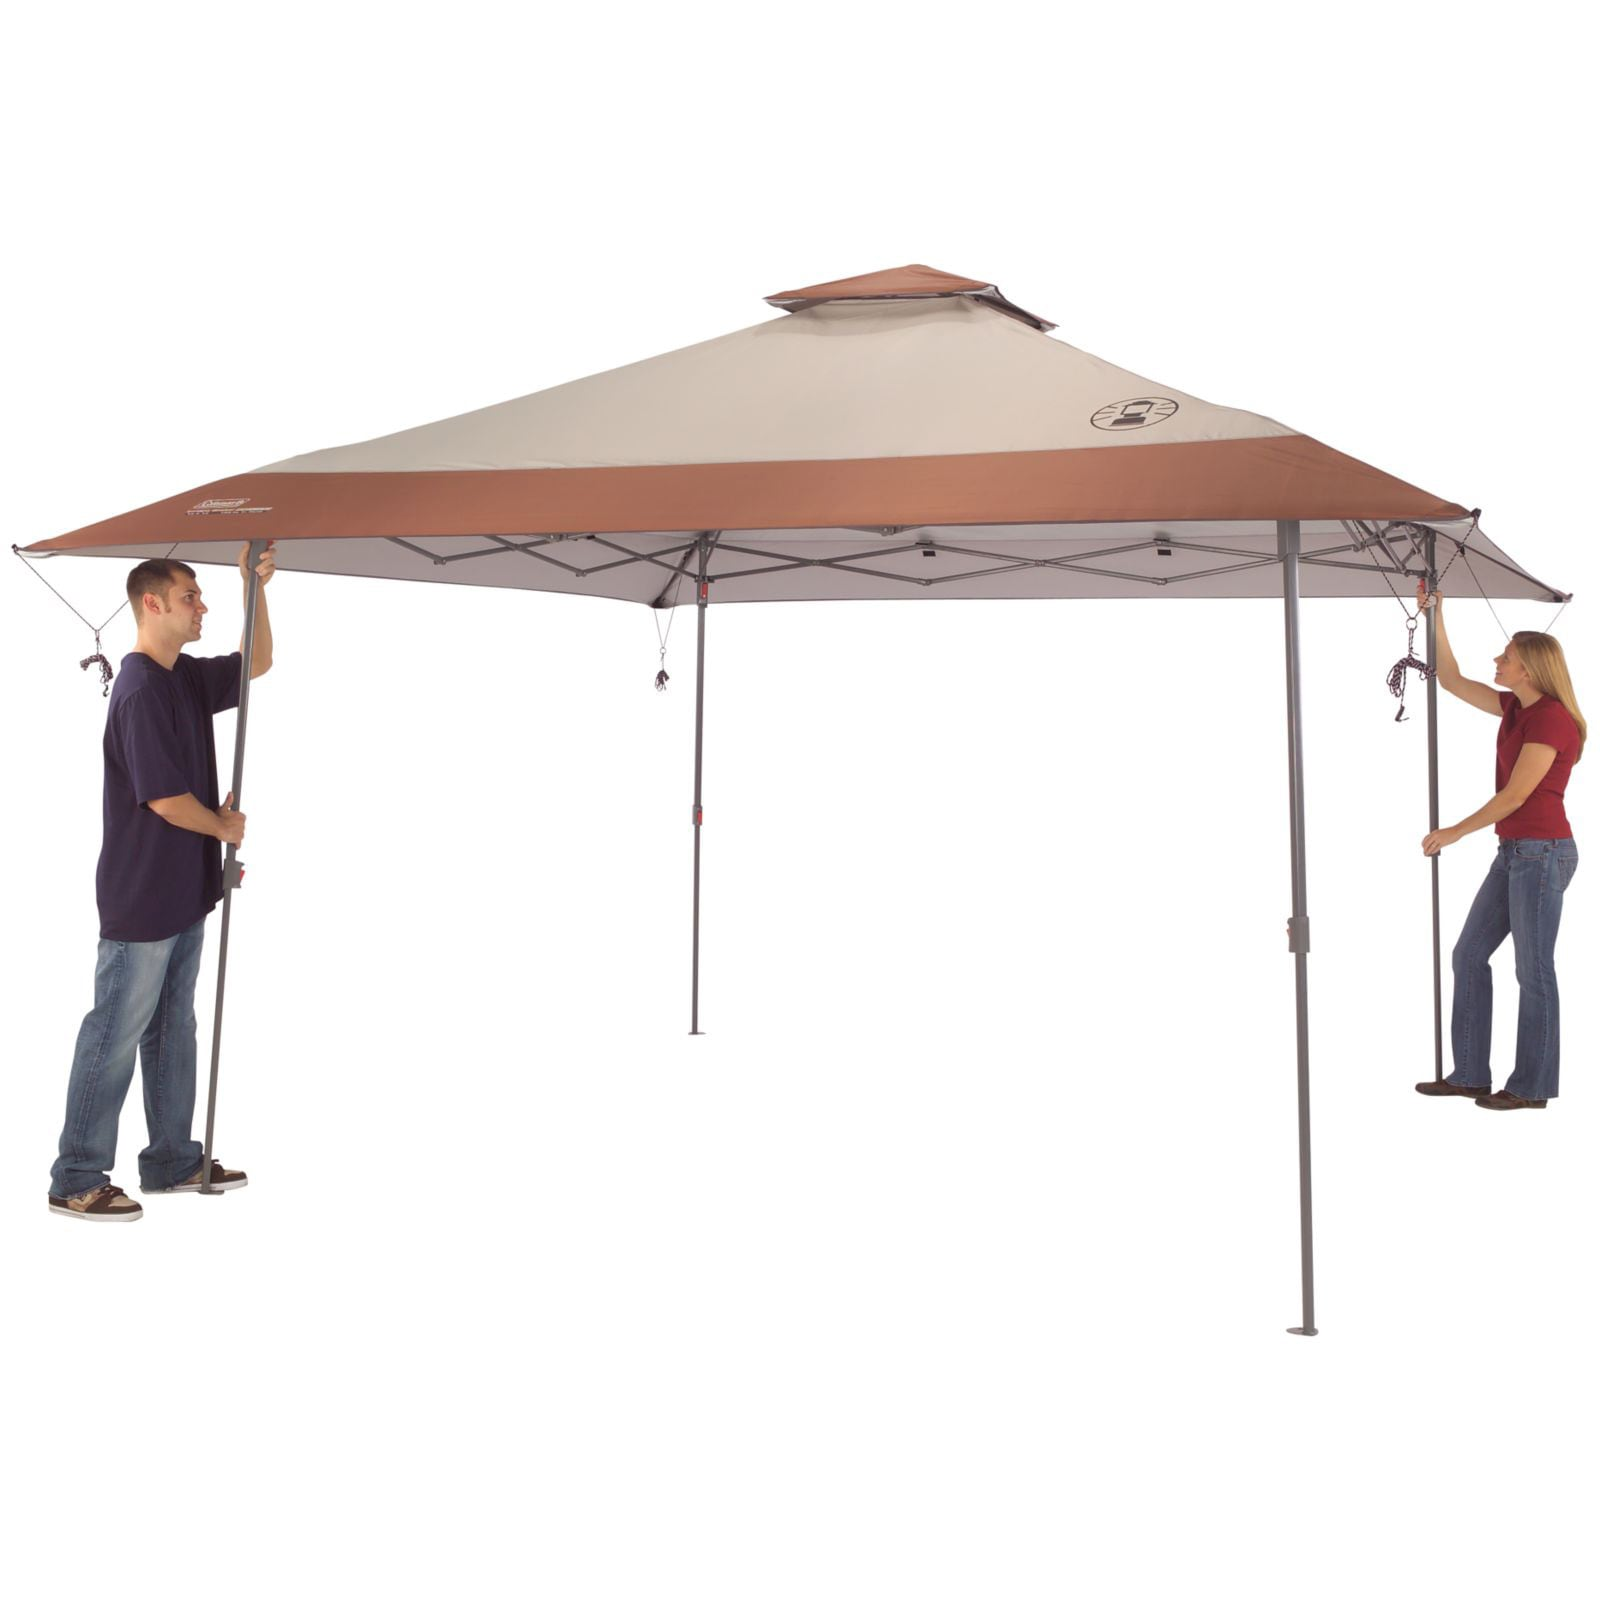 Coleman Back Home 13x13 ft Canopy - Free Shipping Today - Overstock.com - 13681633  sc 1 st  Overstock.com & Coleman Back Home 13x13 ft Canopy - Free Shipping Today ...